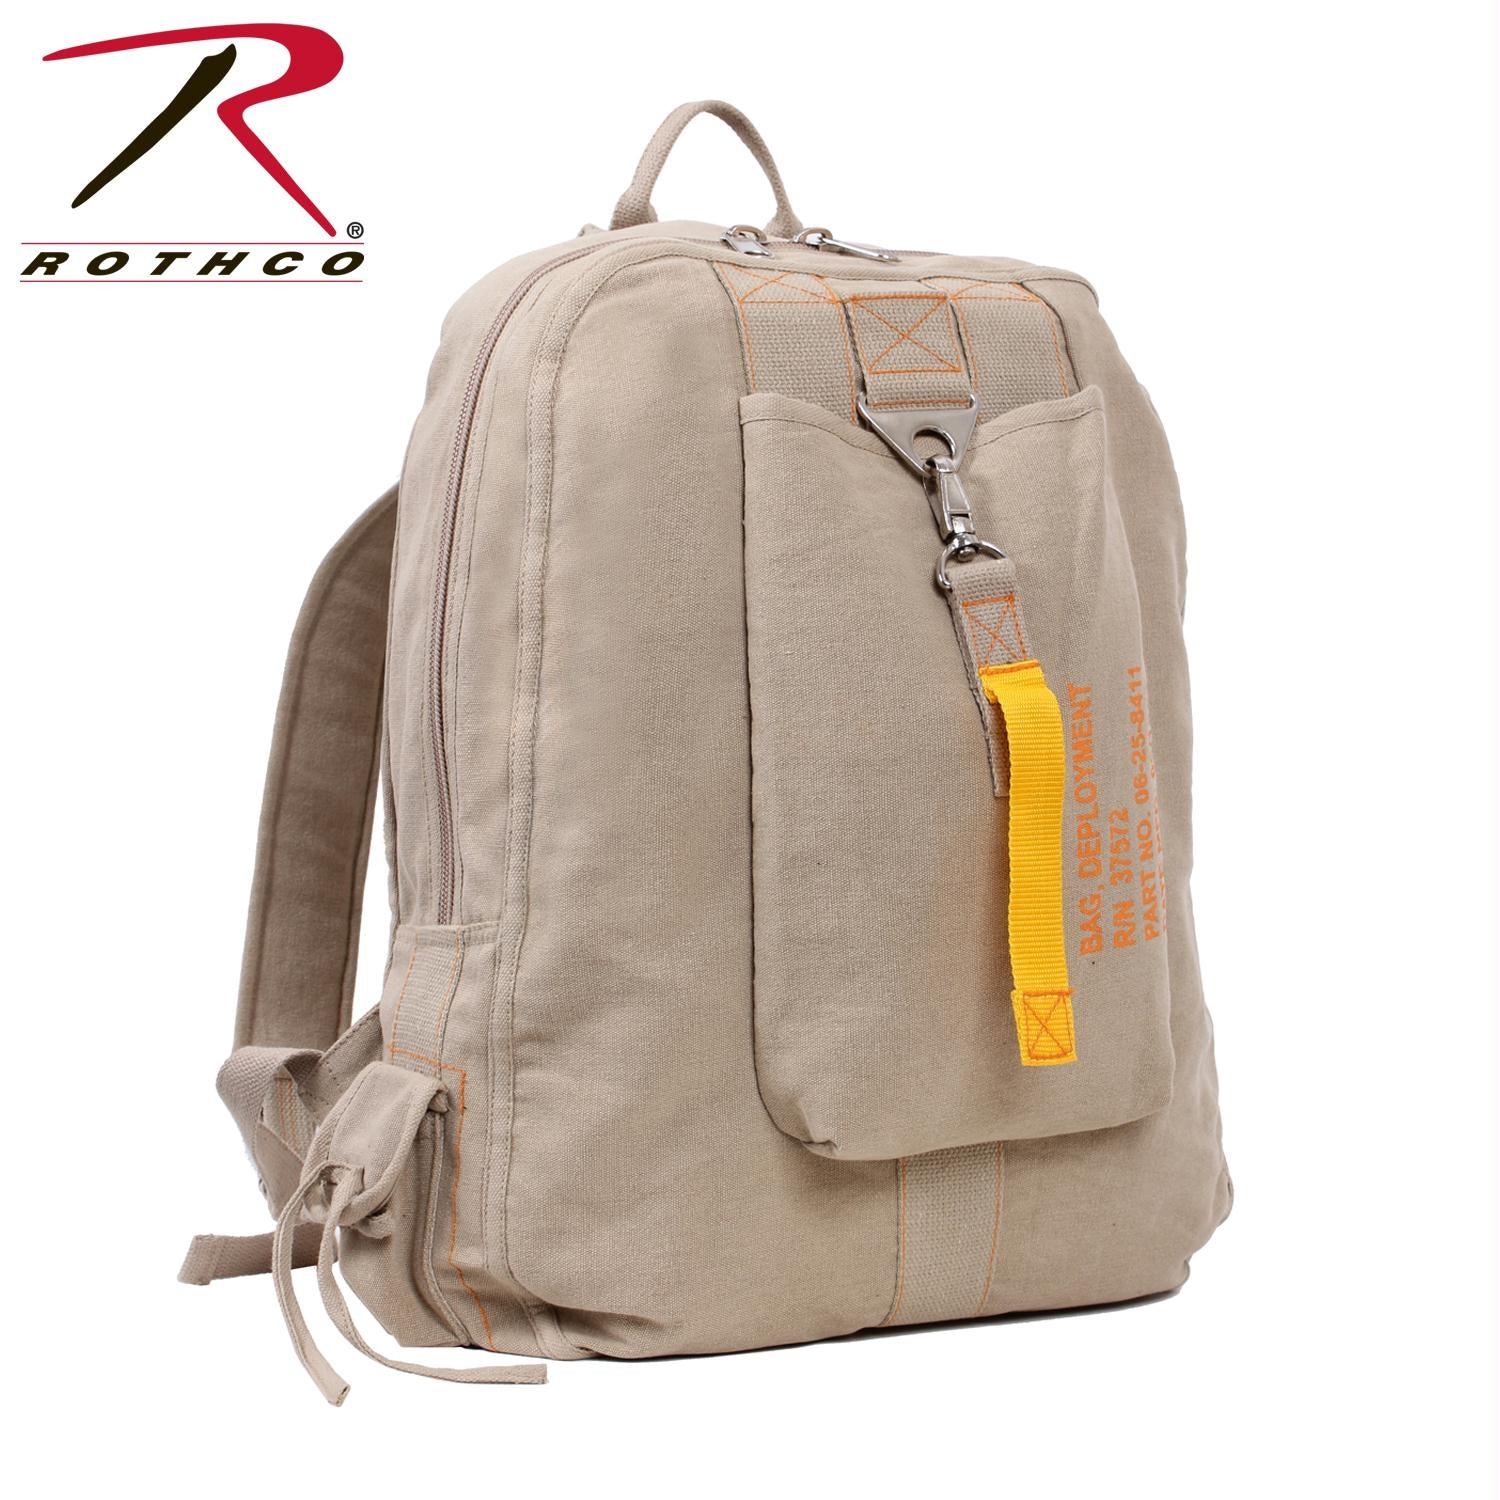 Rothco Vintage Canvas Flight Bag - Khaki